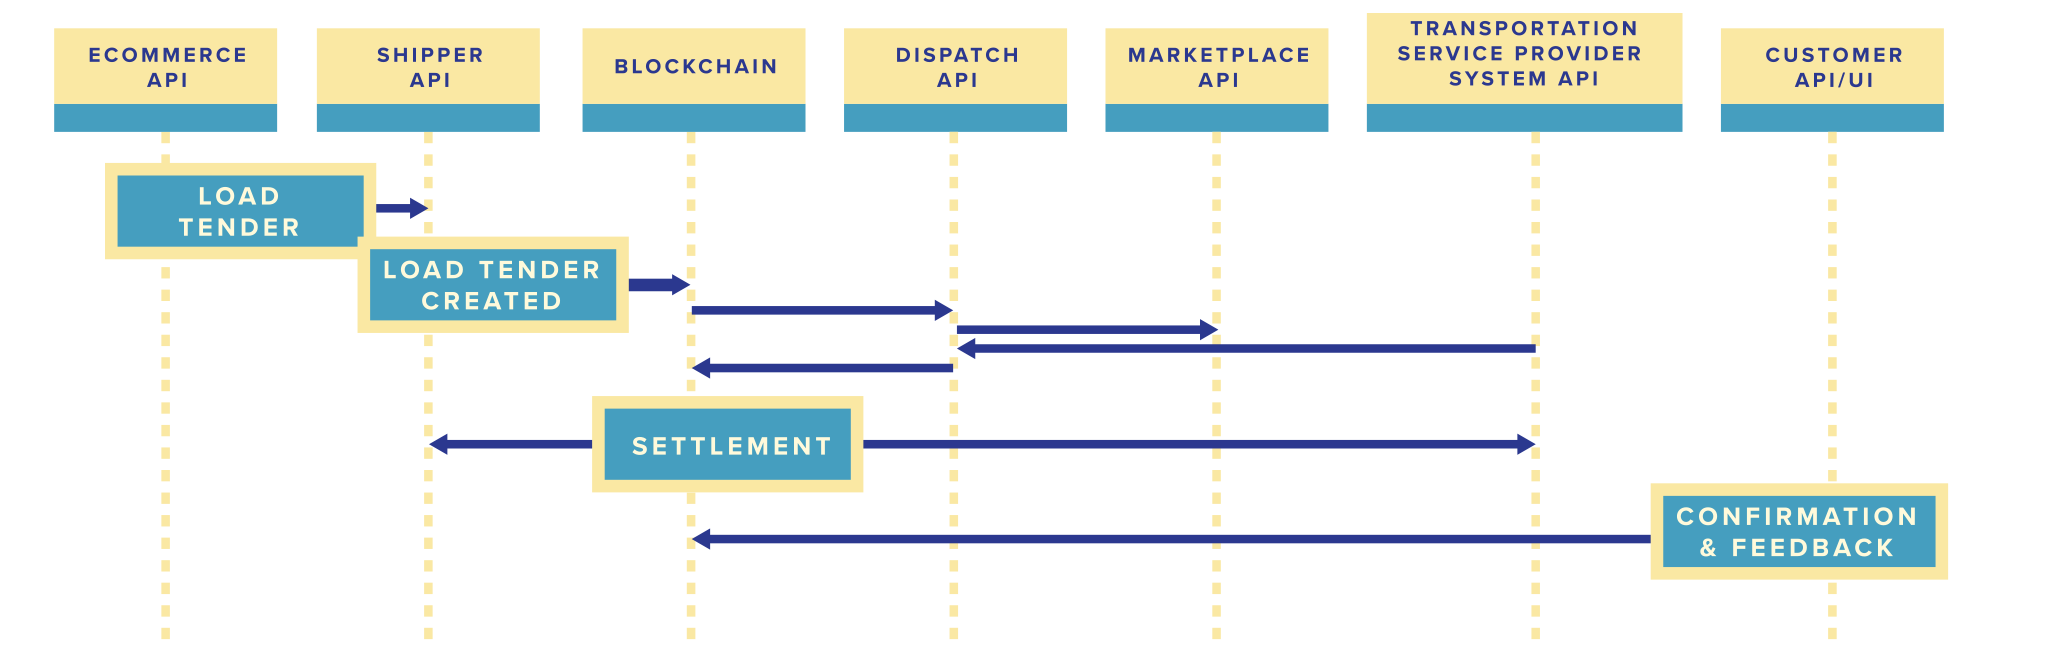 SupplyBloc connects various participants into one homogeneous information system with Blockchain, smart contracts, API gateways, SDKs and proprietary user-facing applications.